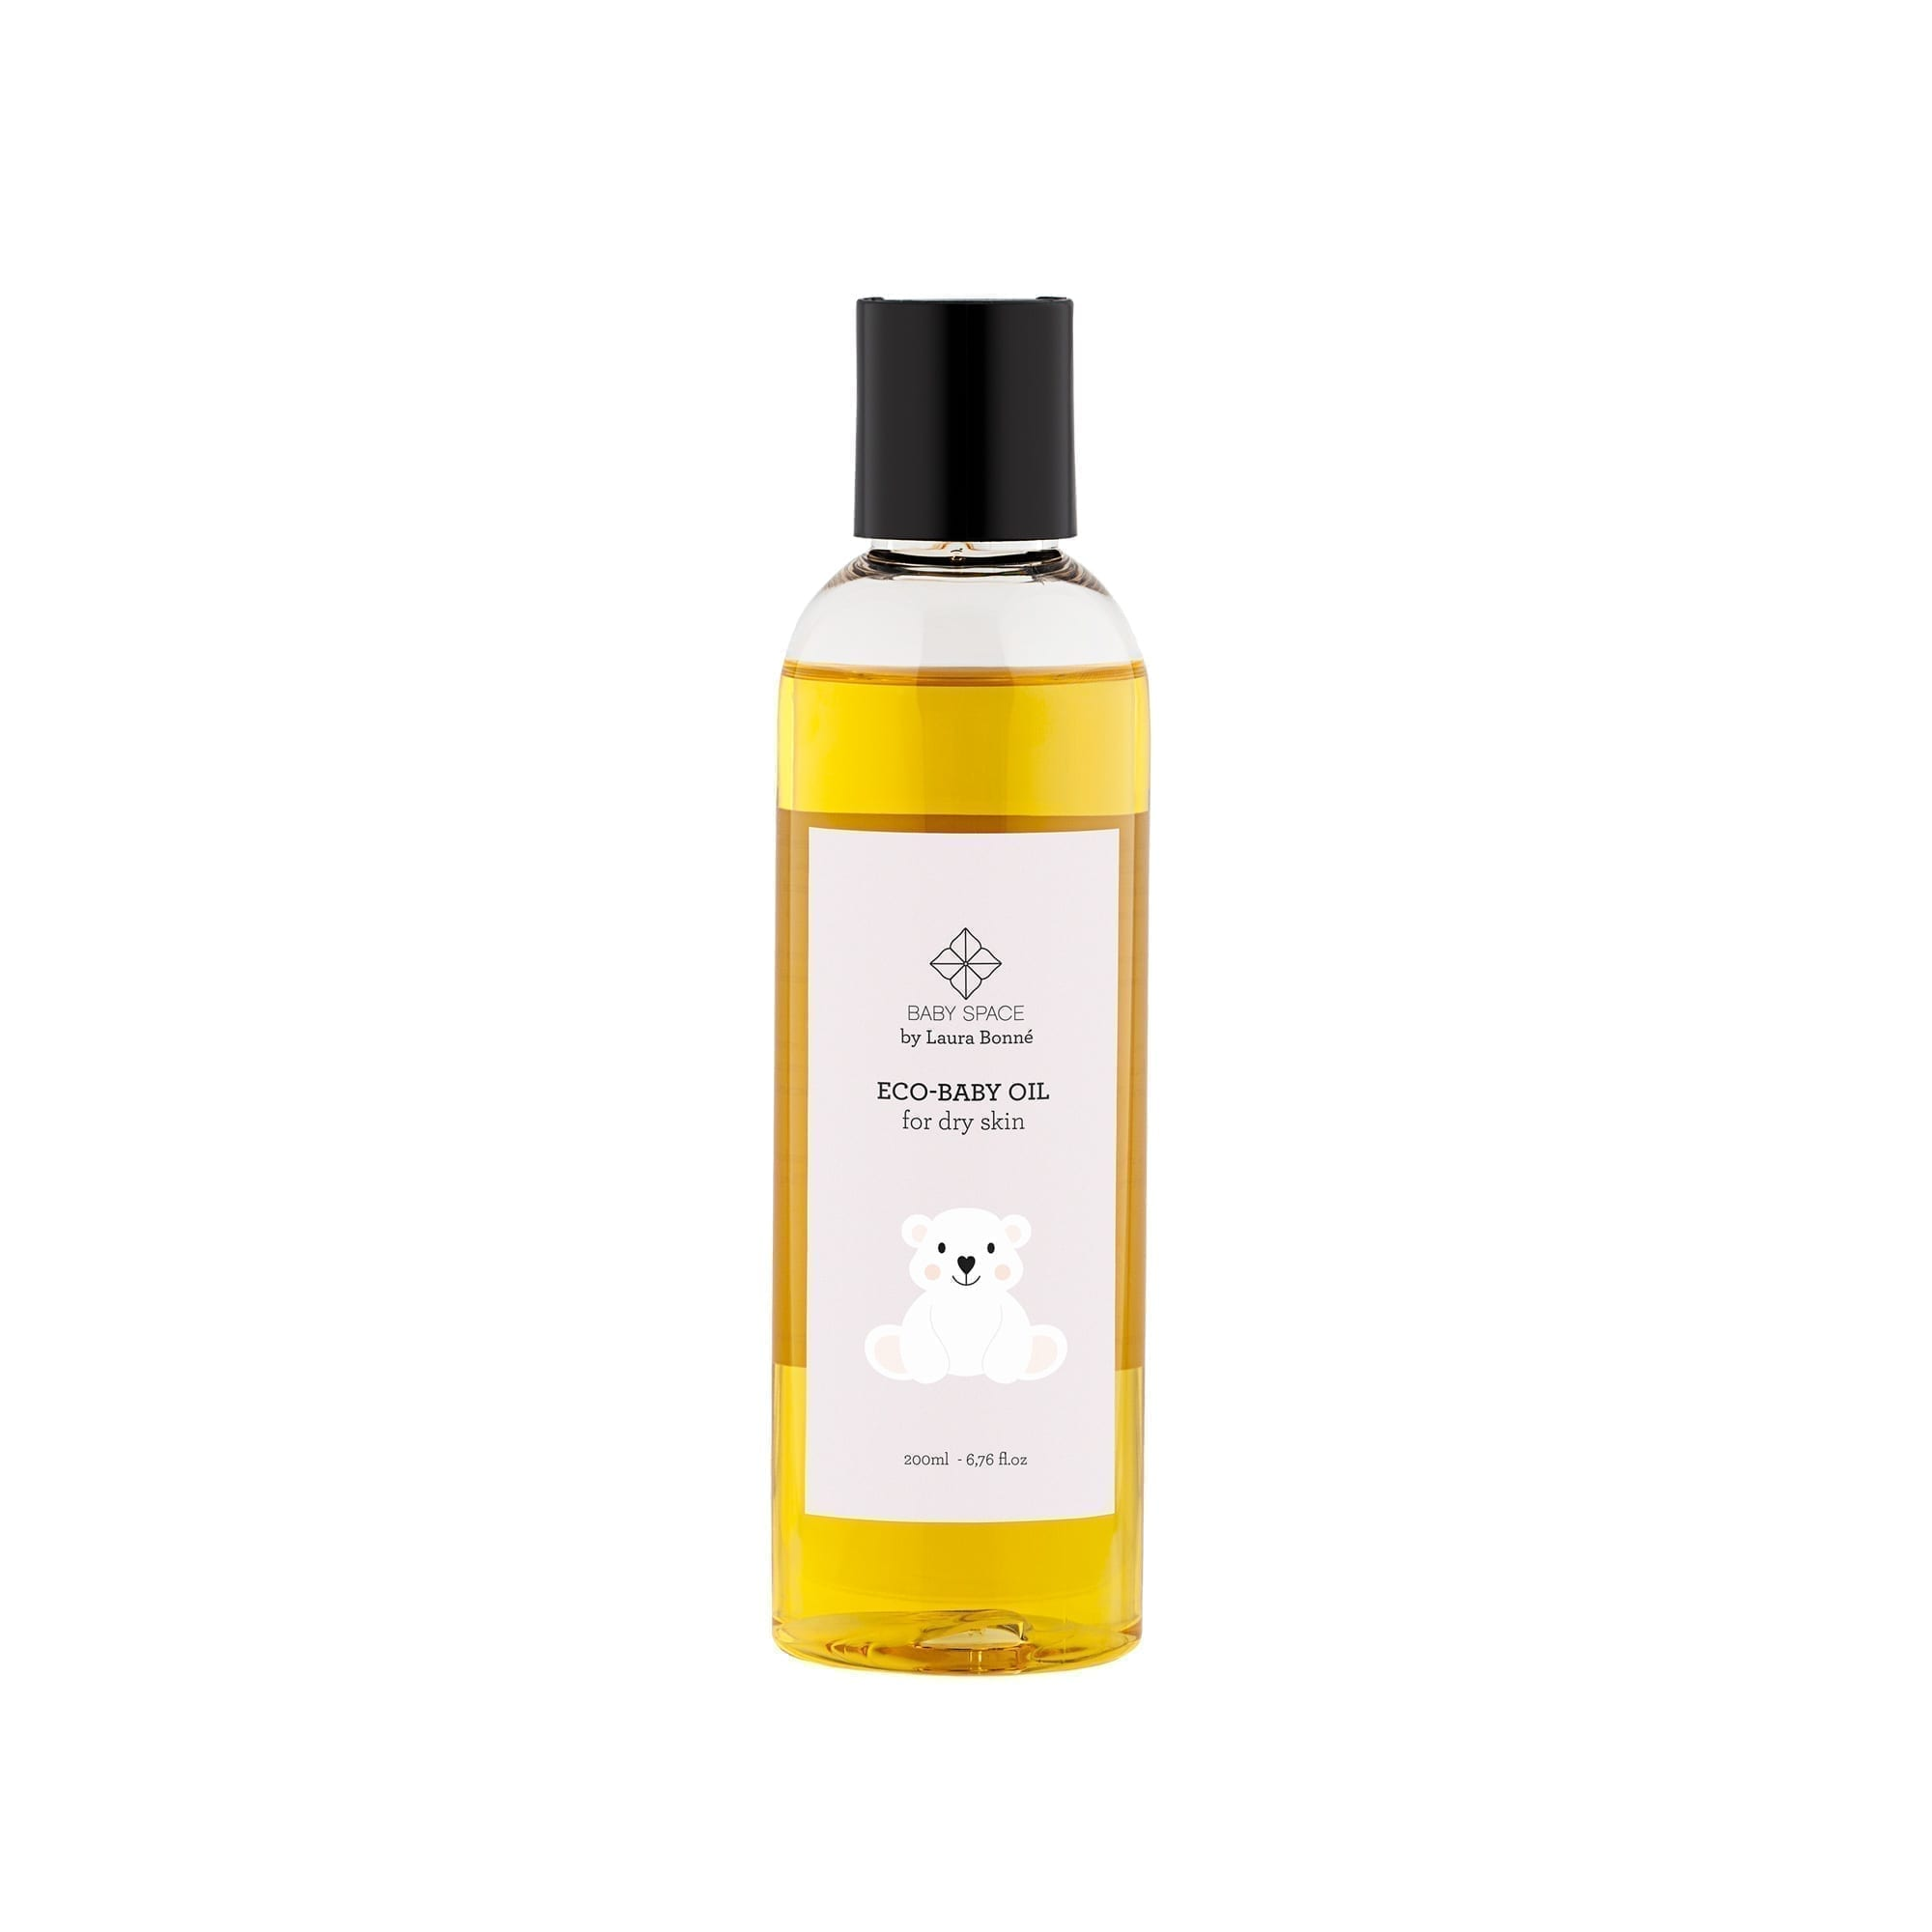 Amazing Space - ECO-BABY Oil for Dry Skin